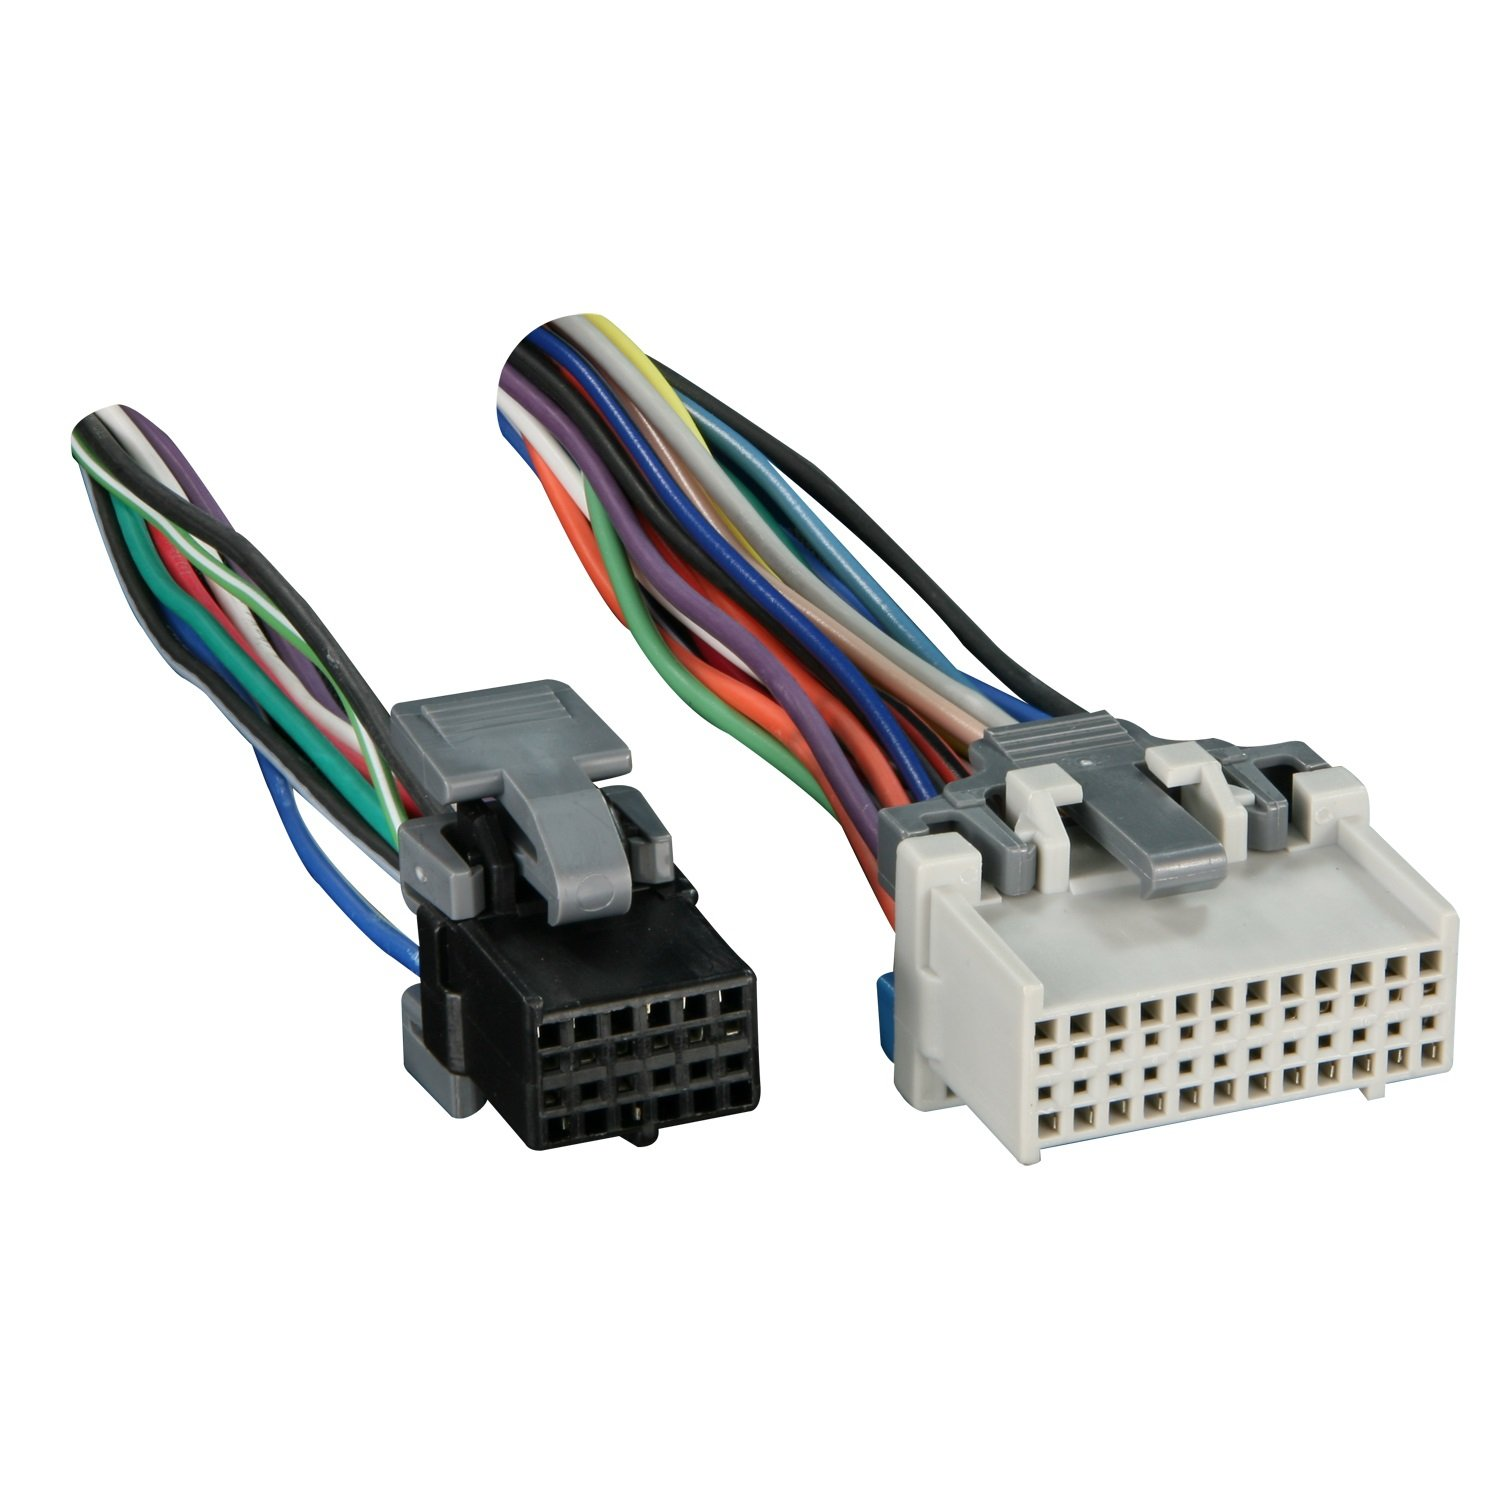 711log4bdML._SL1500_ amazon com metra turbowires 71 2003 1 wiring harness car electronics wire harness for car at webbmarketing.co